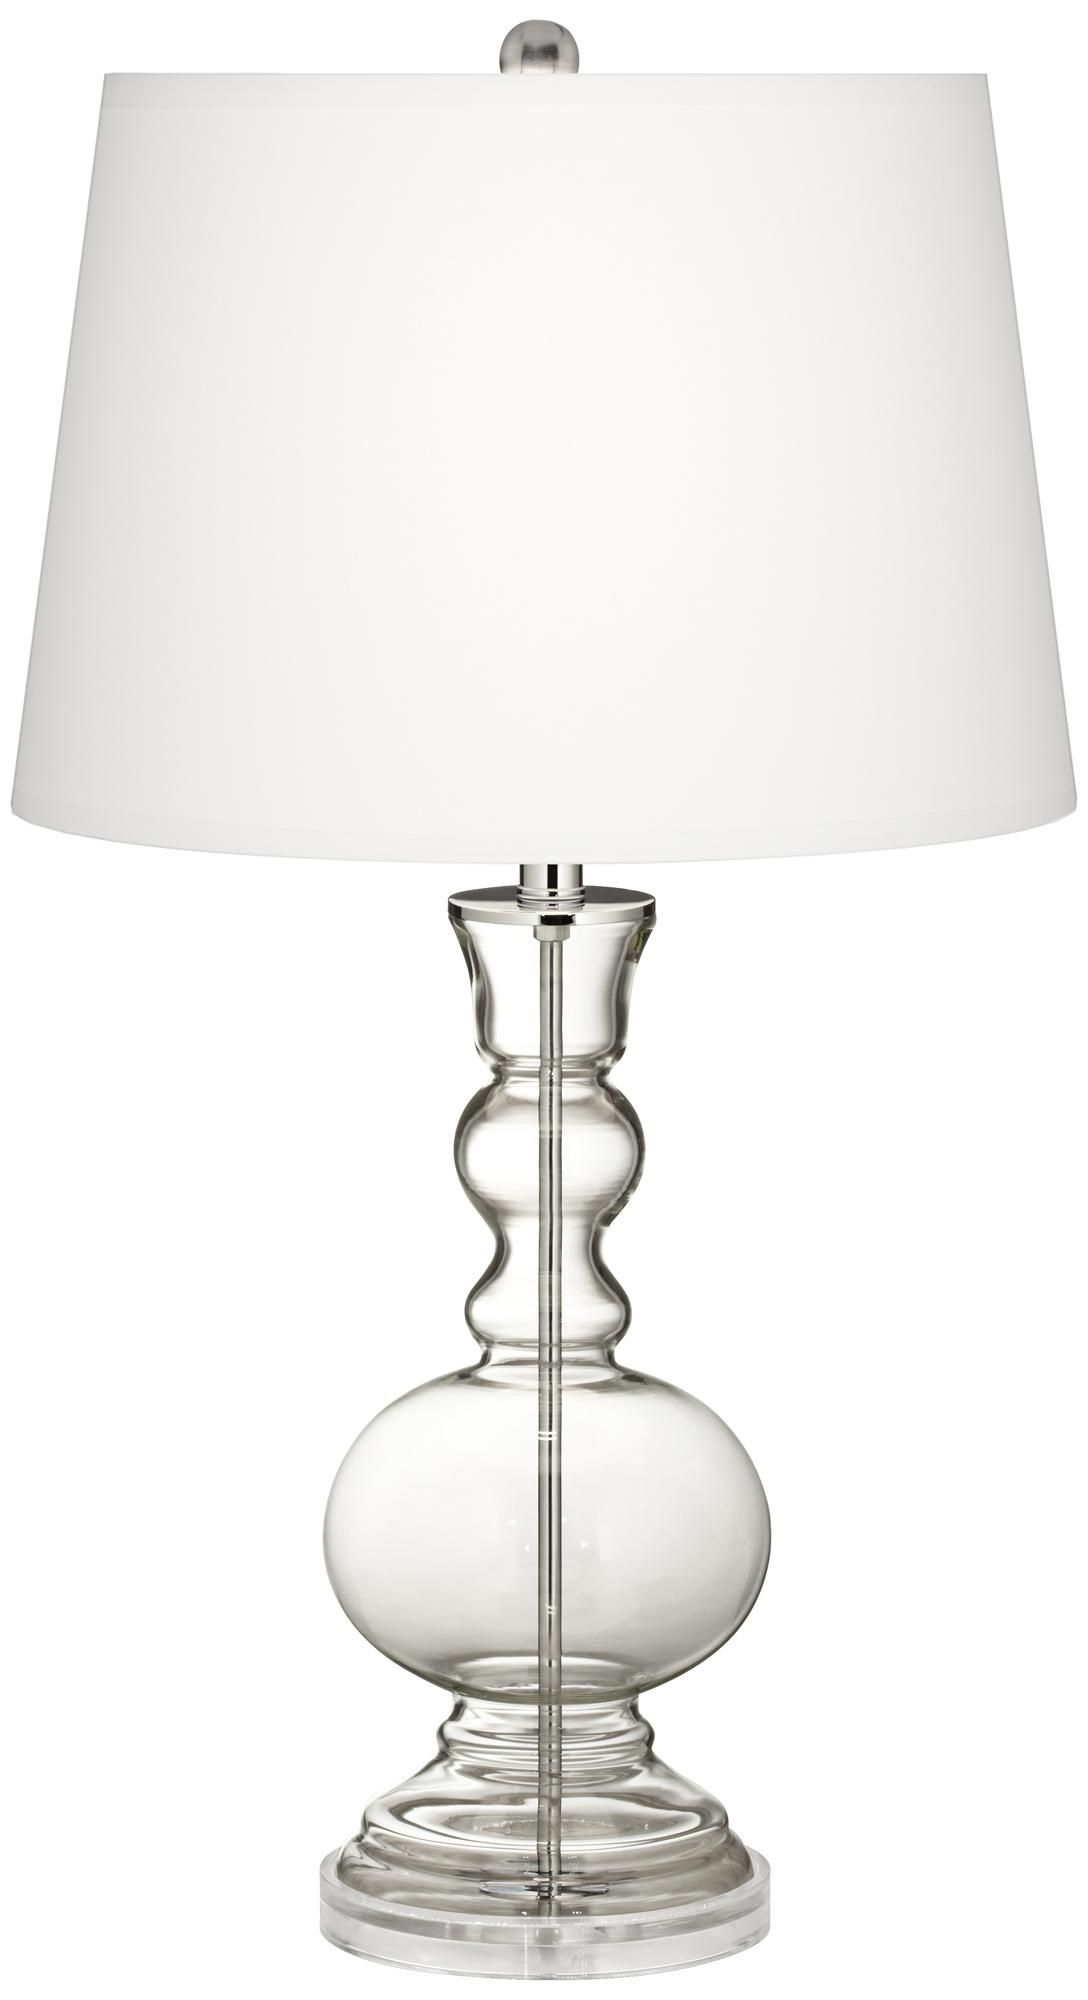 fillable clear glass apothecary table lamp white table lamp white. Black Bedroom Furniture Sets. Home Design Ideas